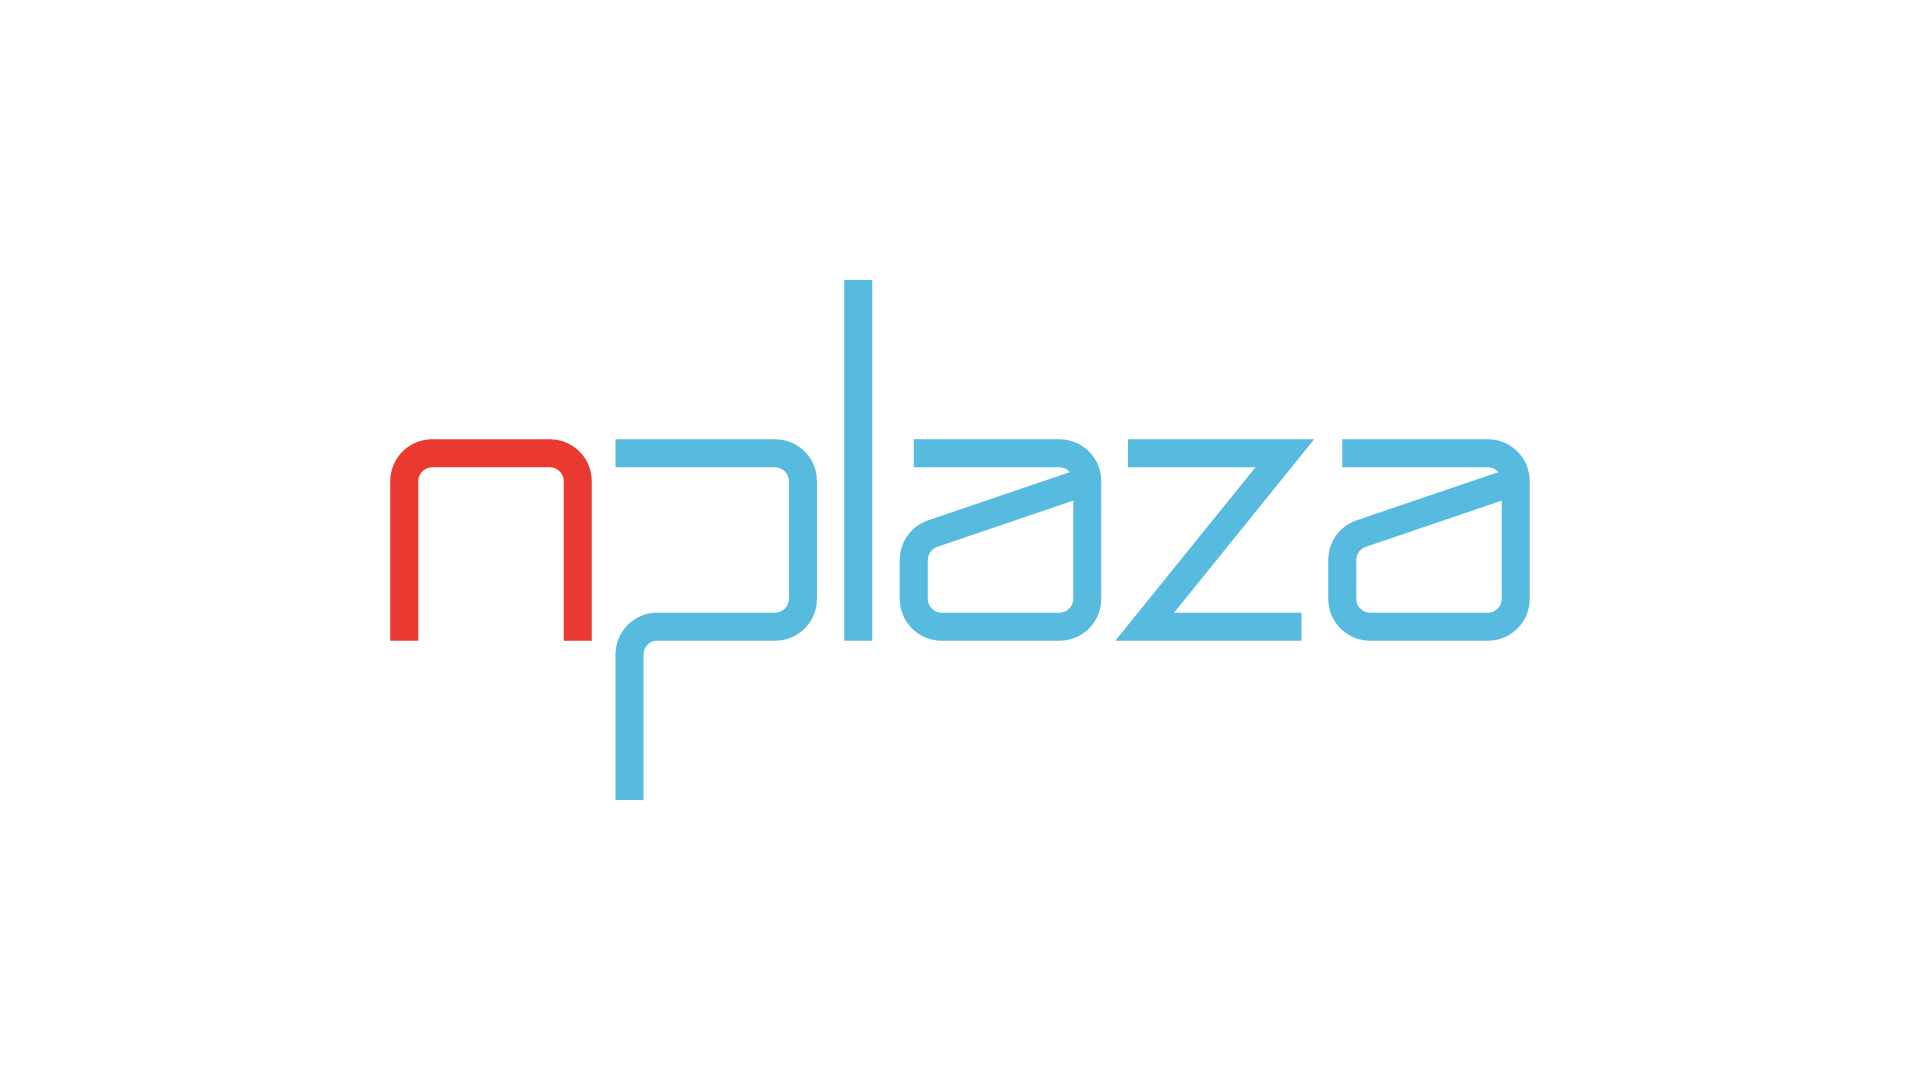 nPlaza logo by Dustin Drake